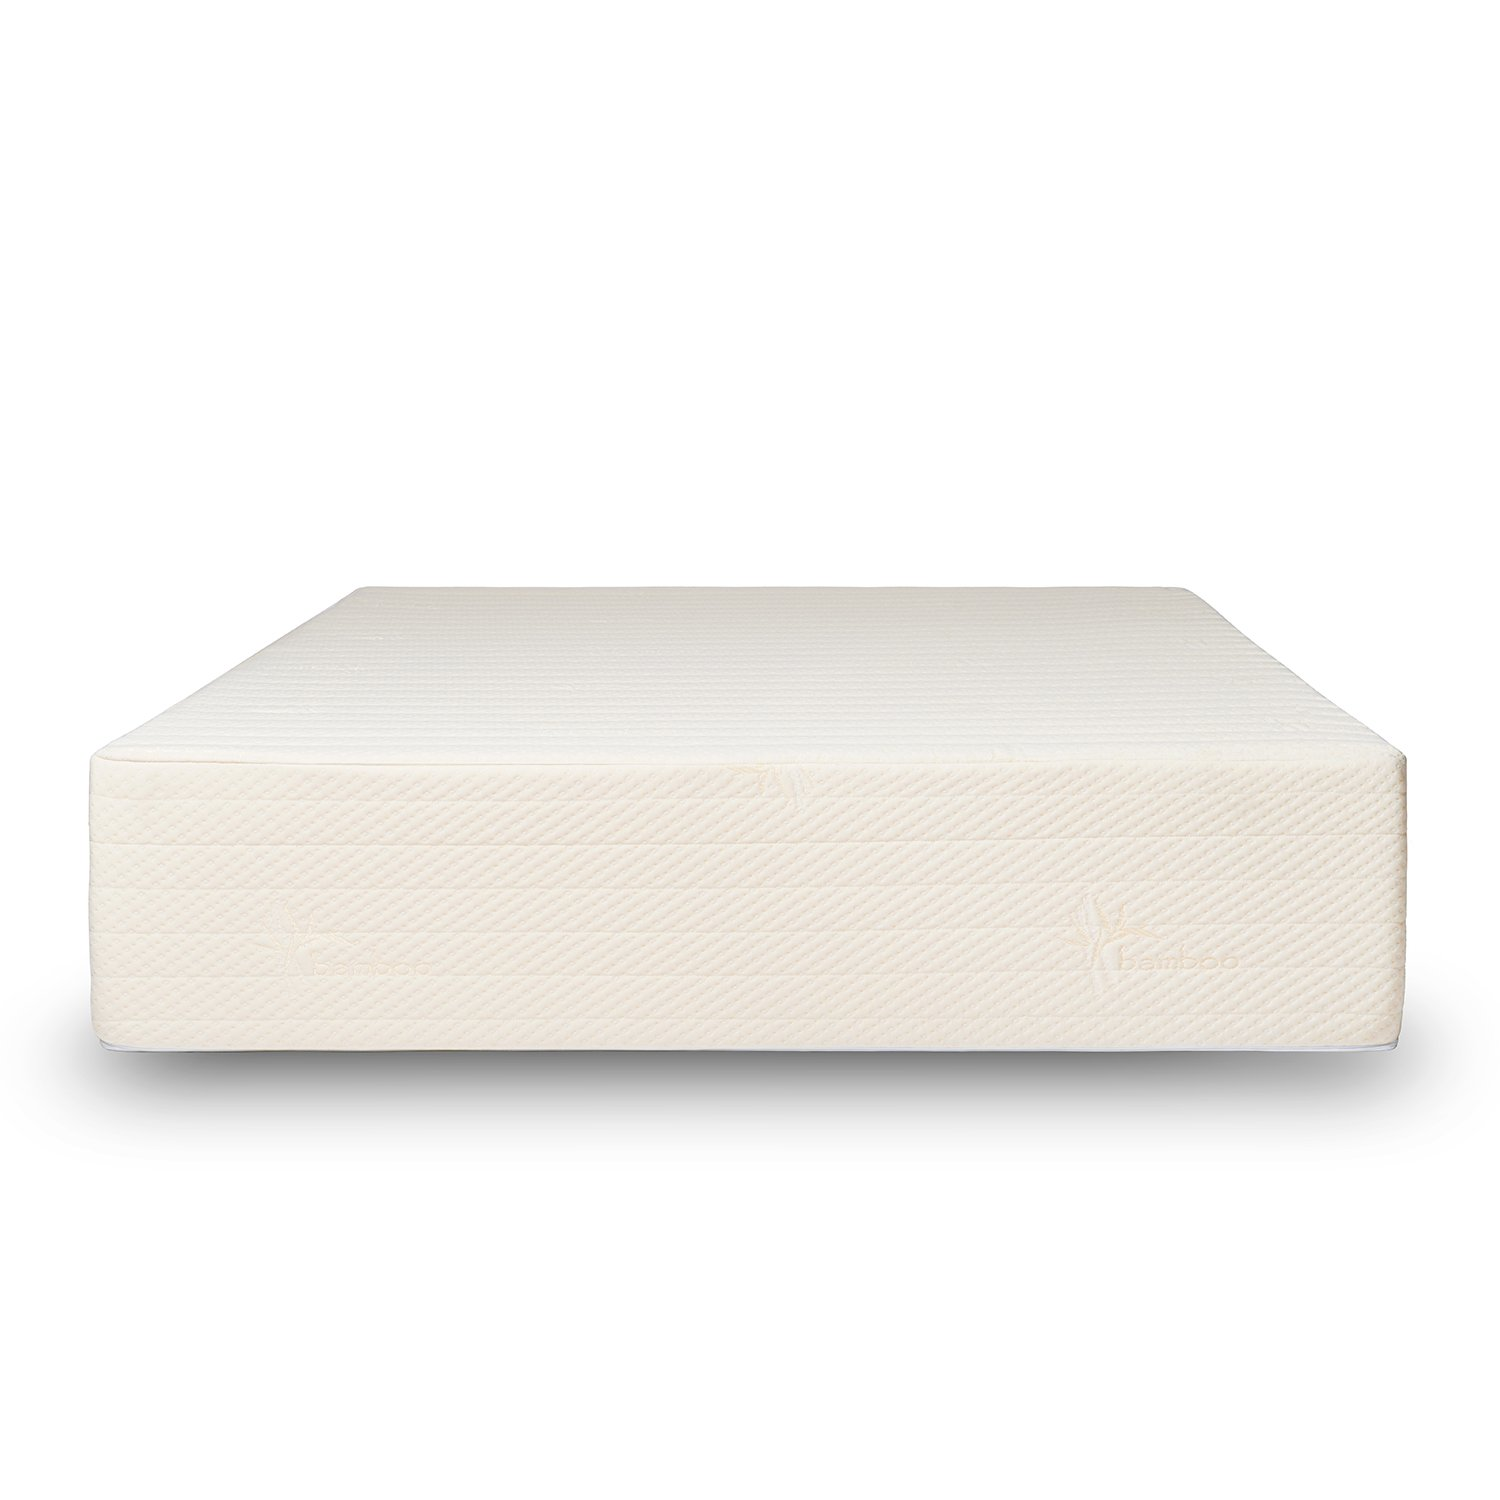 Bamboo Gel 13 Mattress by Brentwood Home